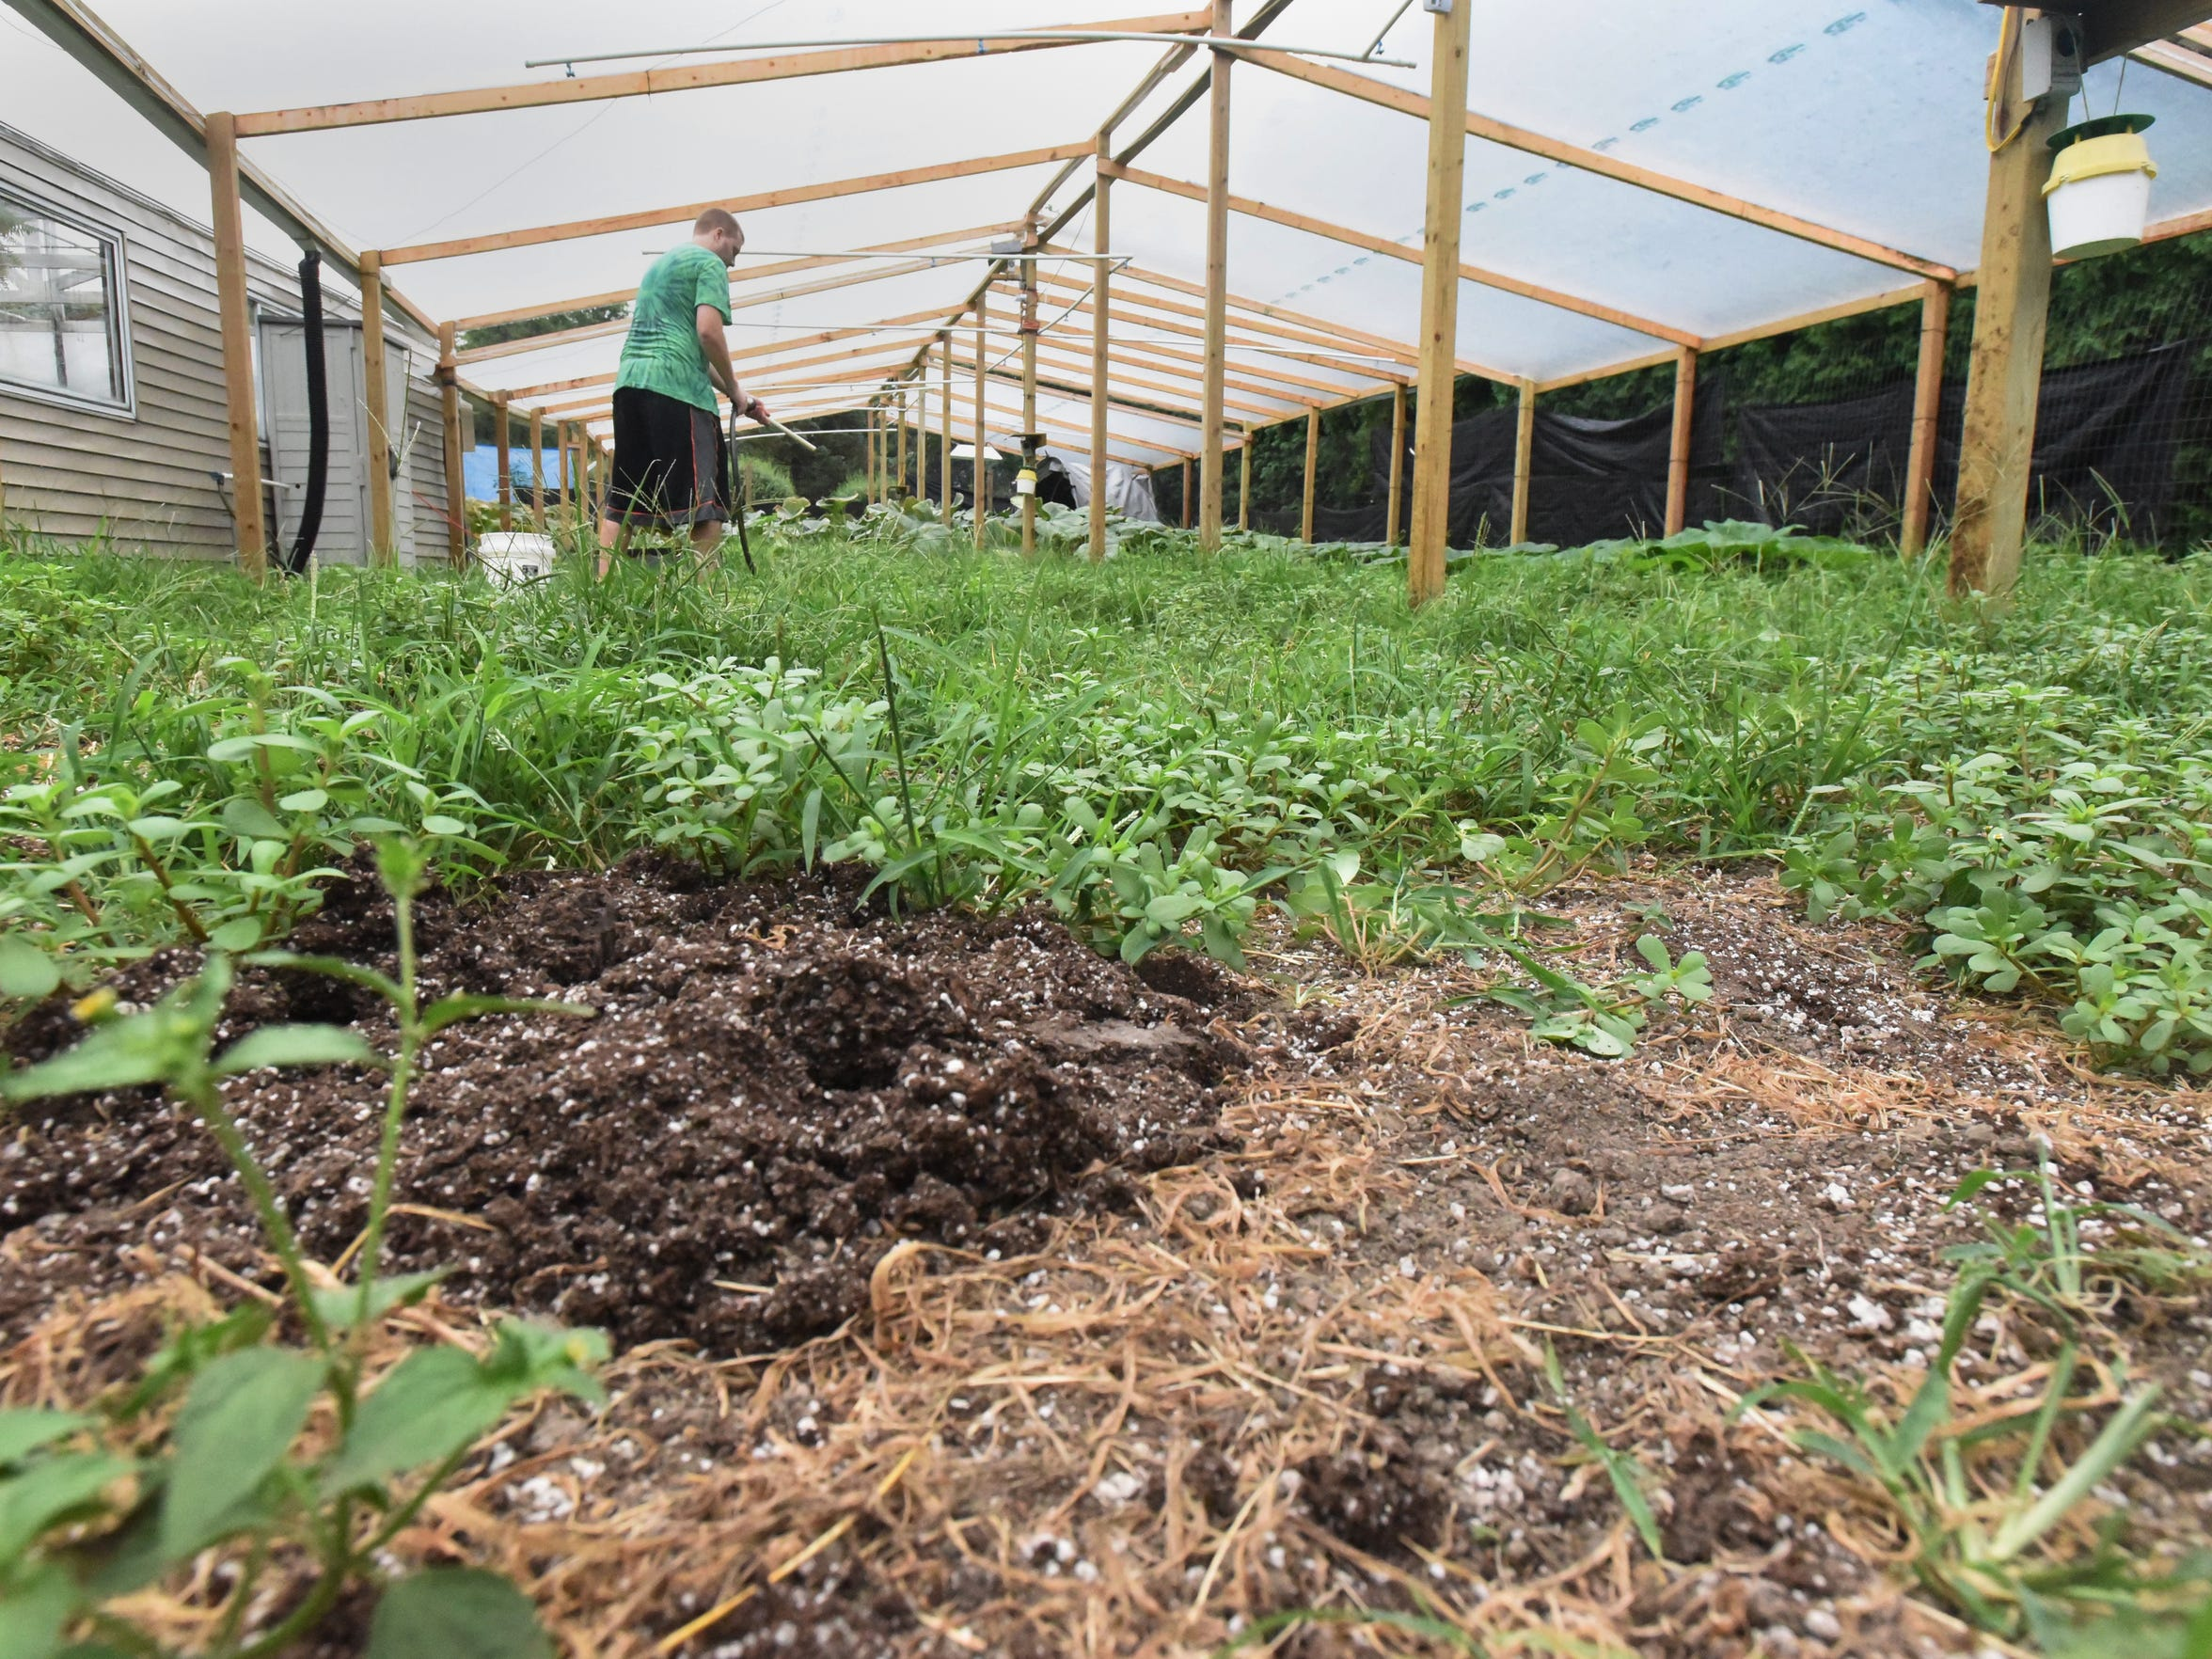 Rusty Ortman lost two of his pumpkin plants in June. One plant had a mutation and wouldn't grow a pumpkin and another kept losing the pumpkins that would start. In the end, Ortman pulled both plants out of the ground and focused on his last two.